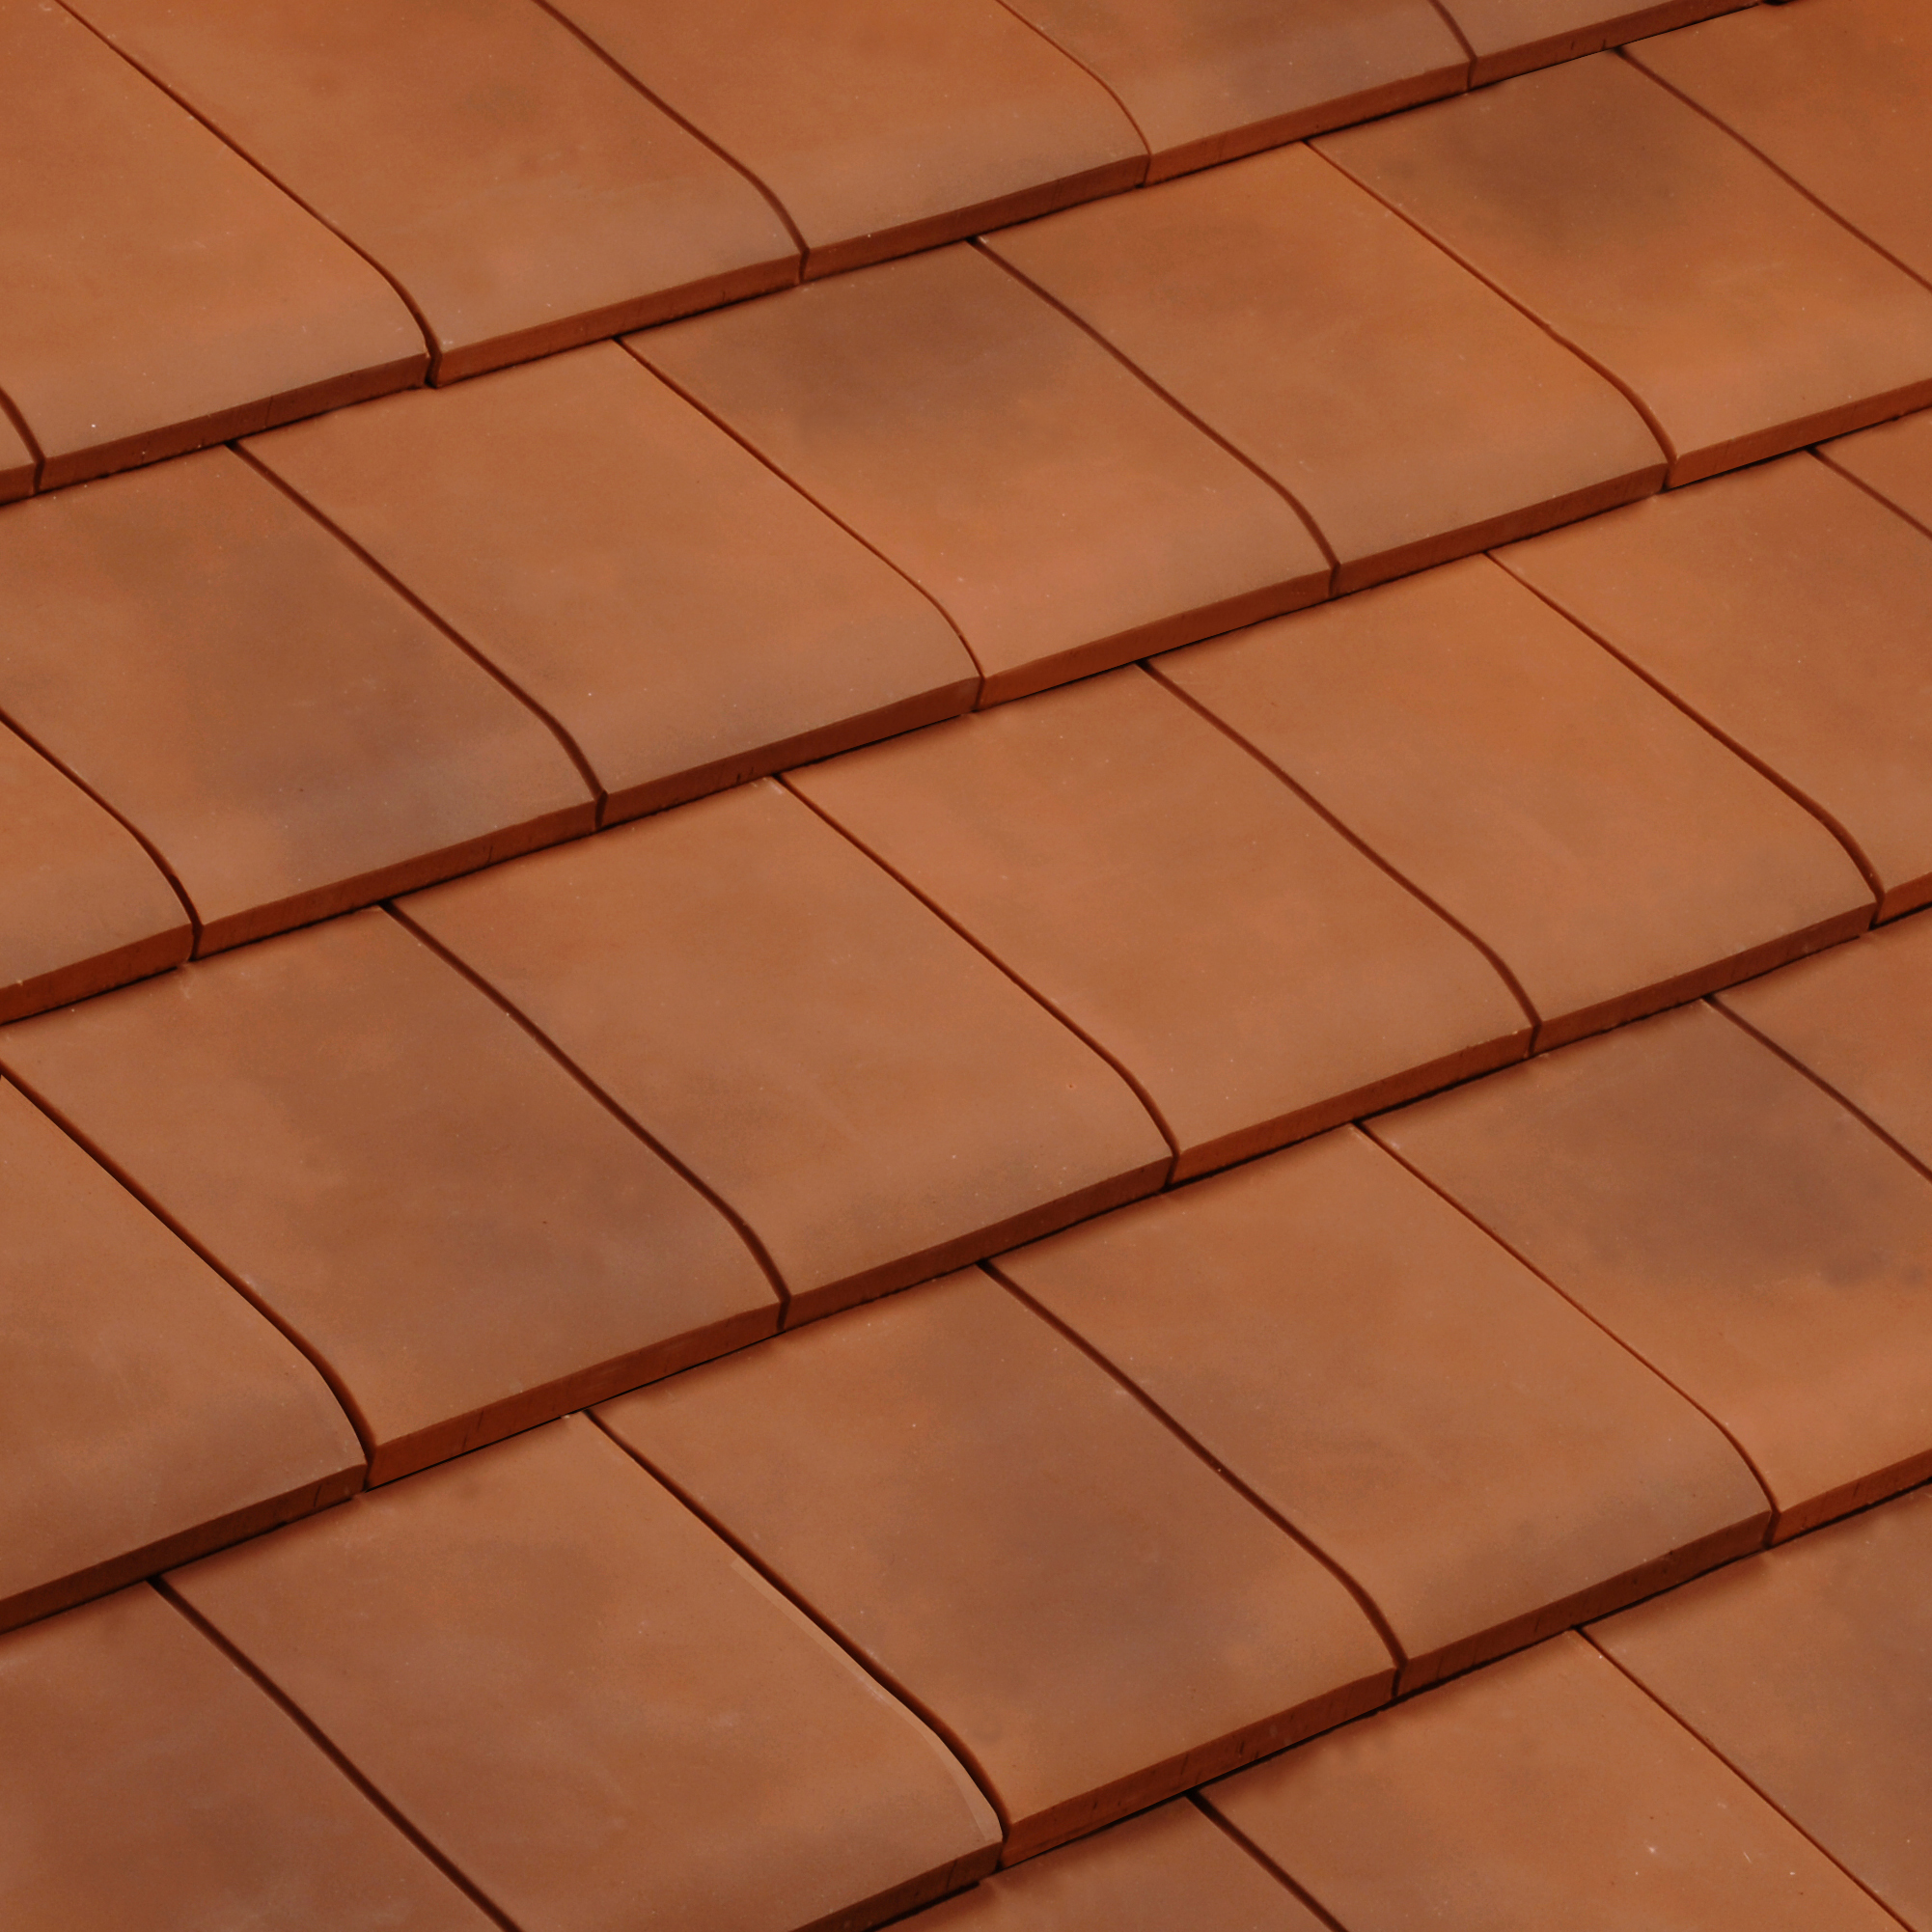 3 Pak Clay Tiles Interlocking Tiles Roof Flat Interlocking Roof Tiles Prices in Pakistan.